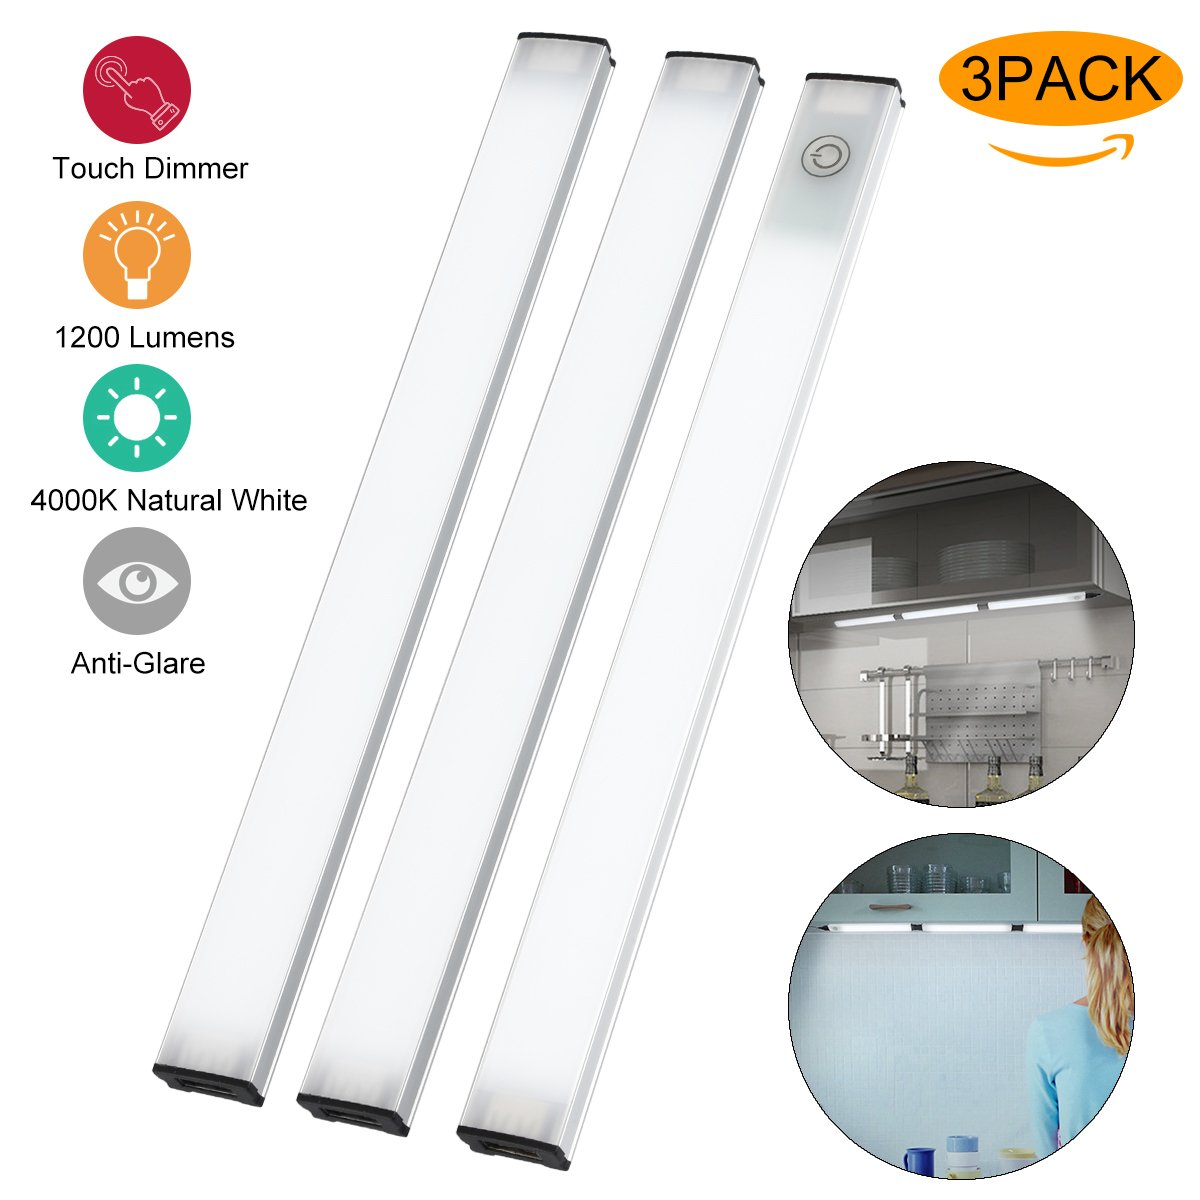 Newforshop Touch Control Kitchen Under Cabinet Lighting, Dimmable LED Under Counter Lights for Kitchen Closet Shelf, 1200 Lumens, Nature White 4000K, 3 Pack